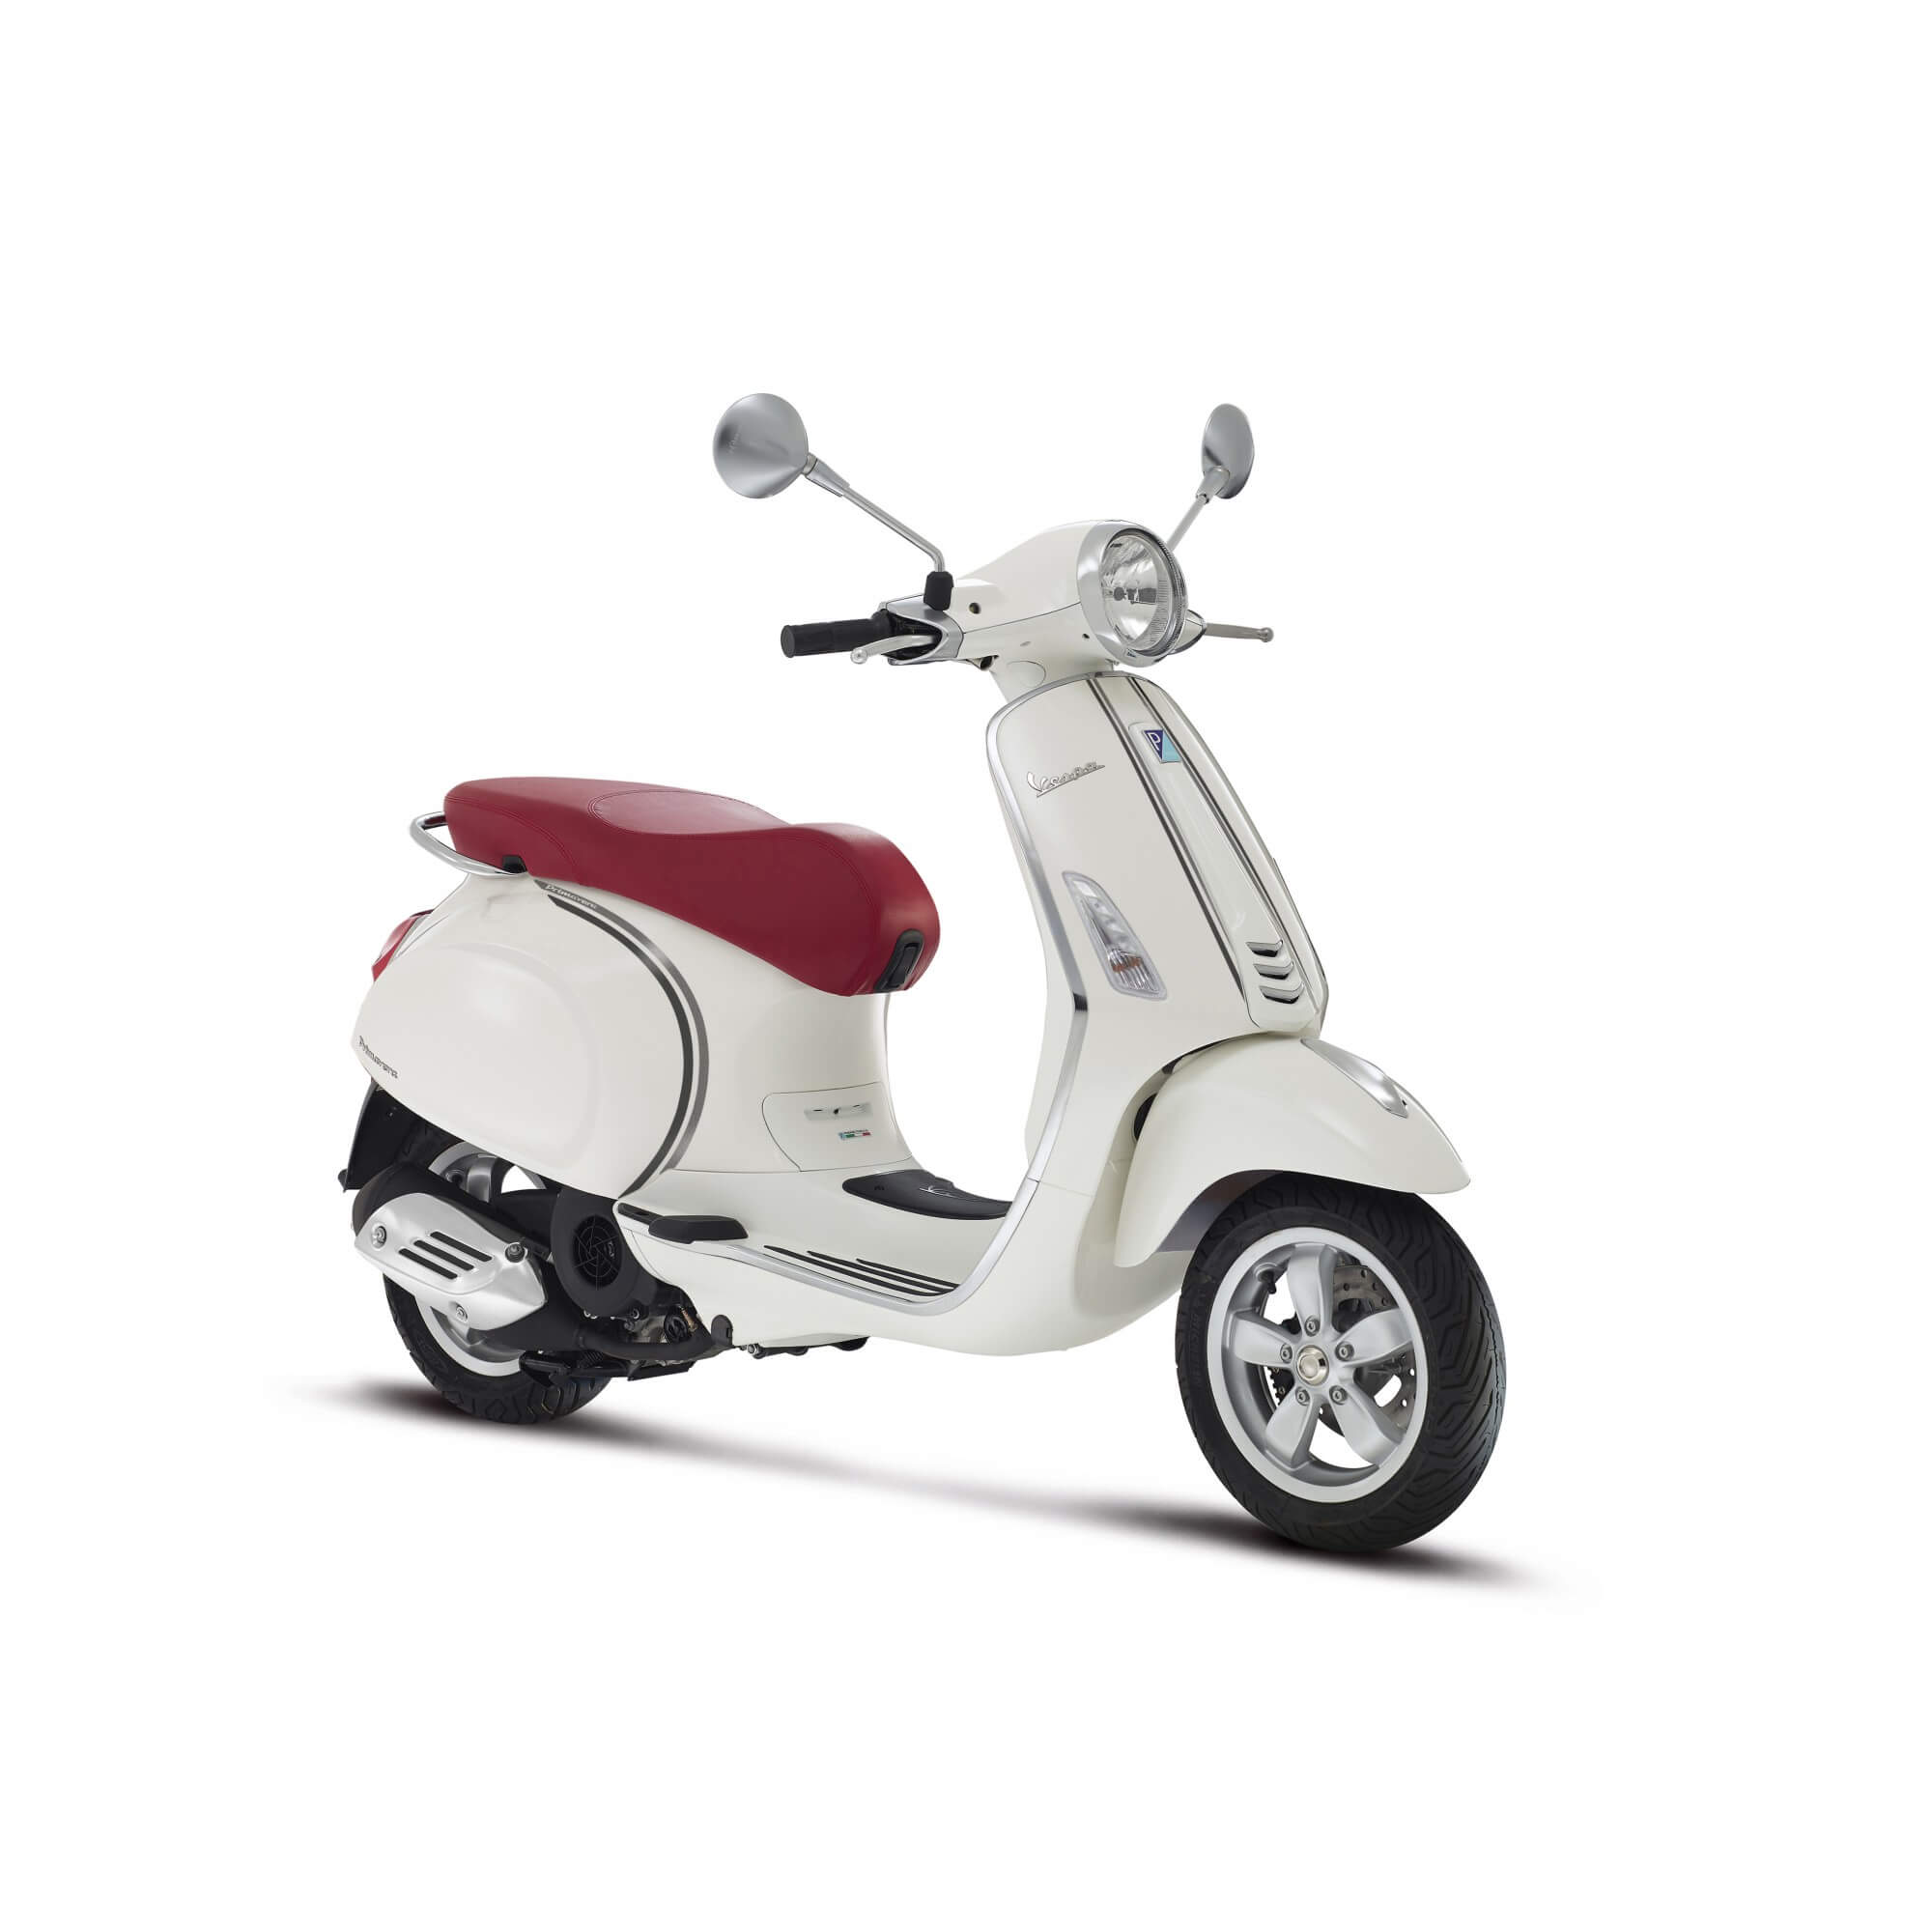 Vespa gts elegance decal kit scooter style noosa motorcycles